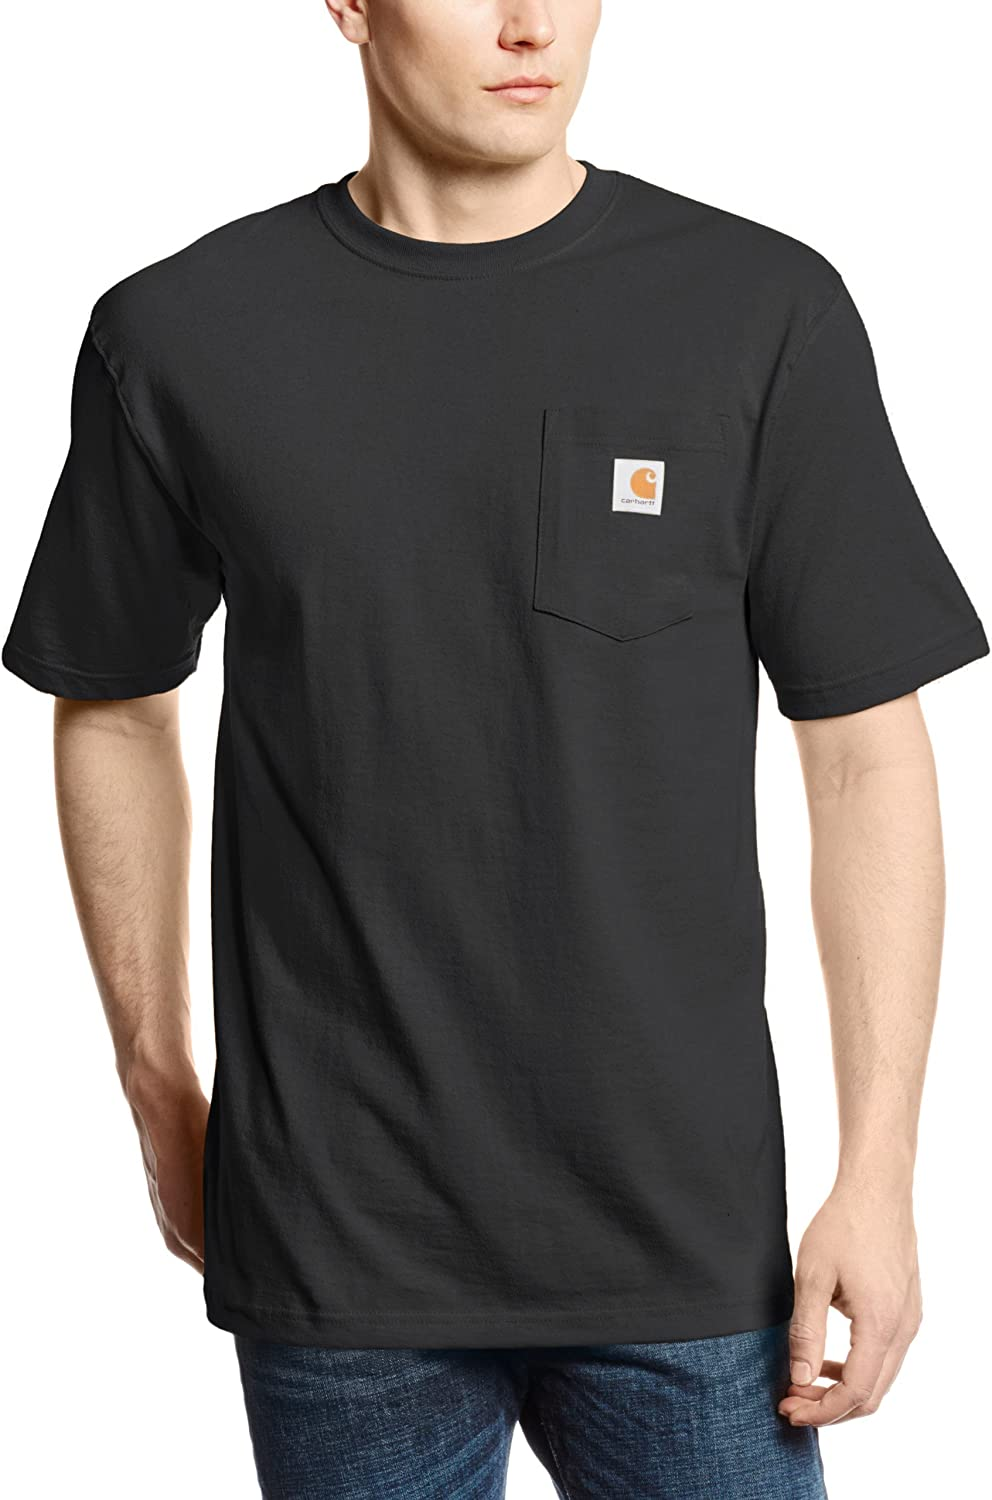 Carhartt Men's K87 Workwear Pocket Short Sleeve T-Shirt (Regular and Big & Tall Sizes) |